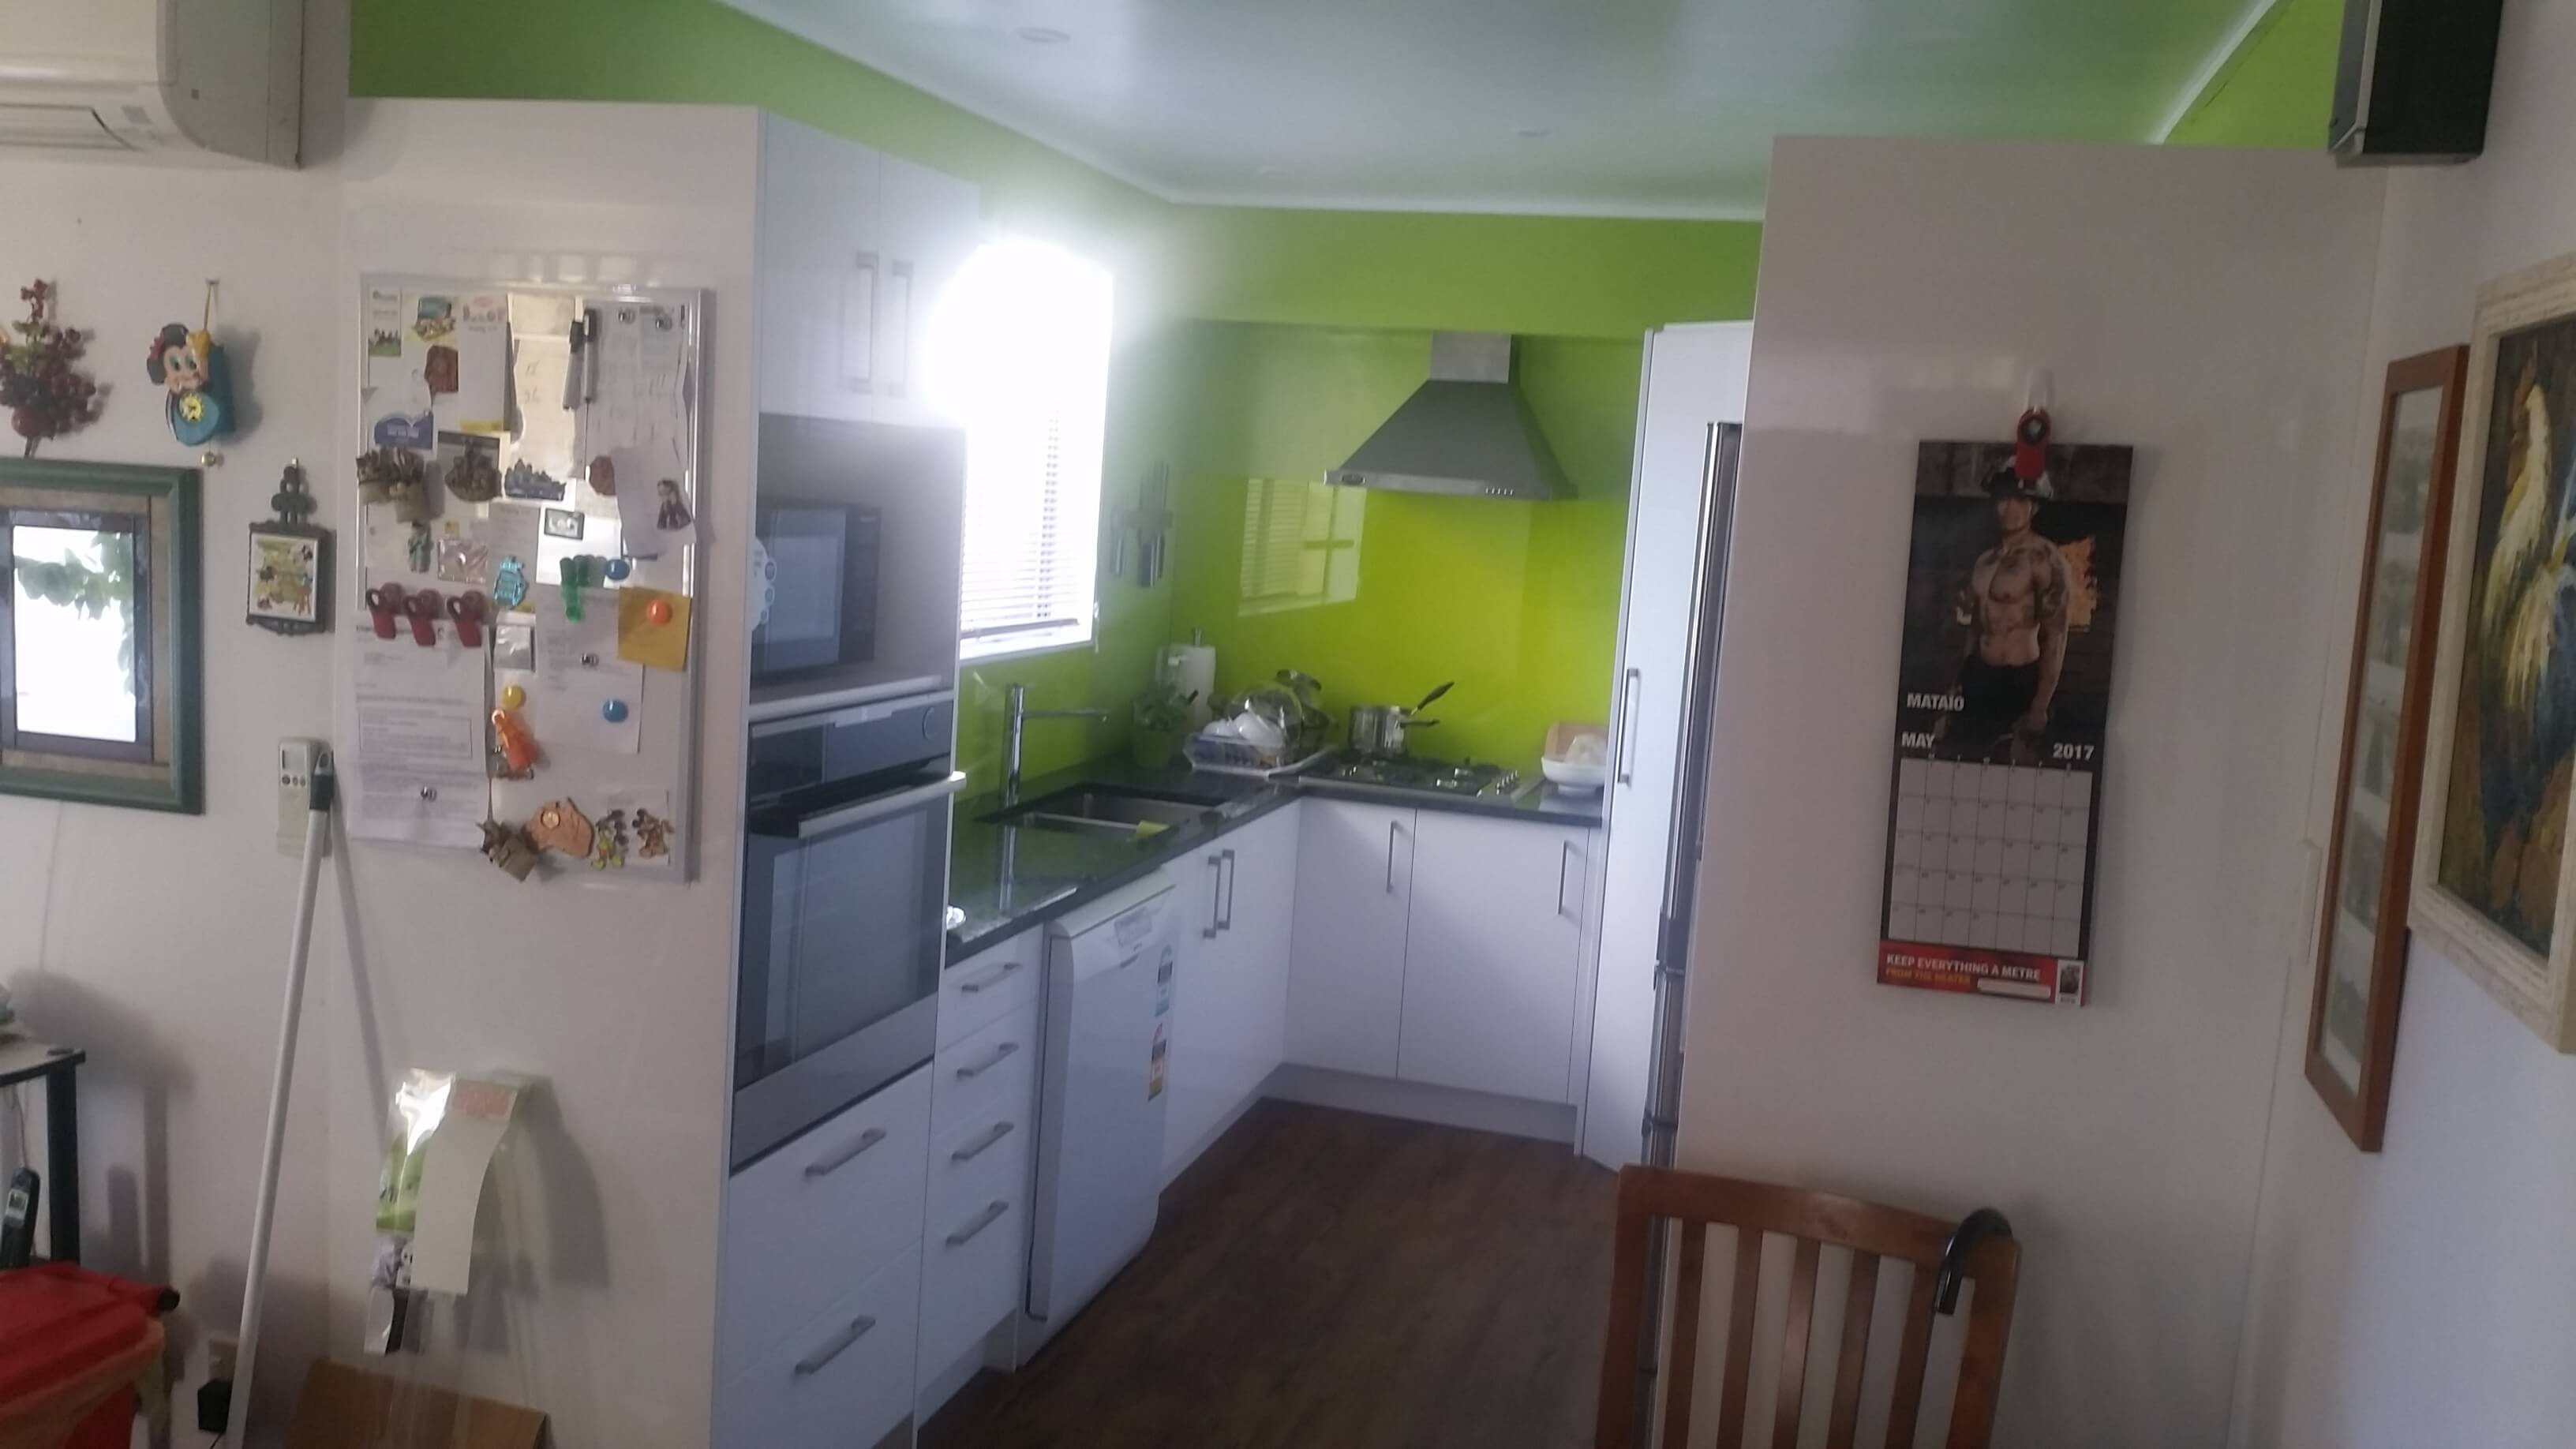 mitre 10 kitchen installaion, flat pack, renovation,